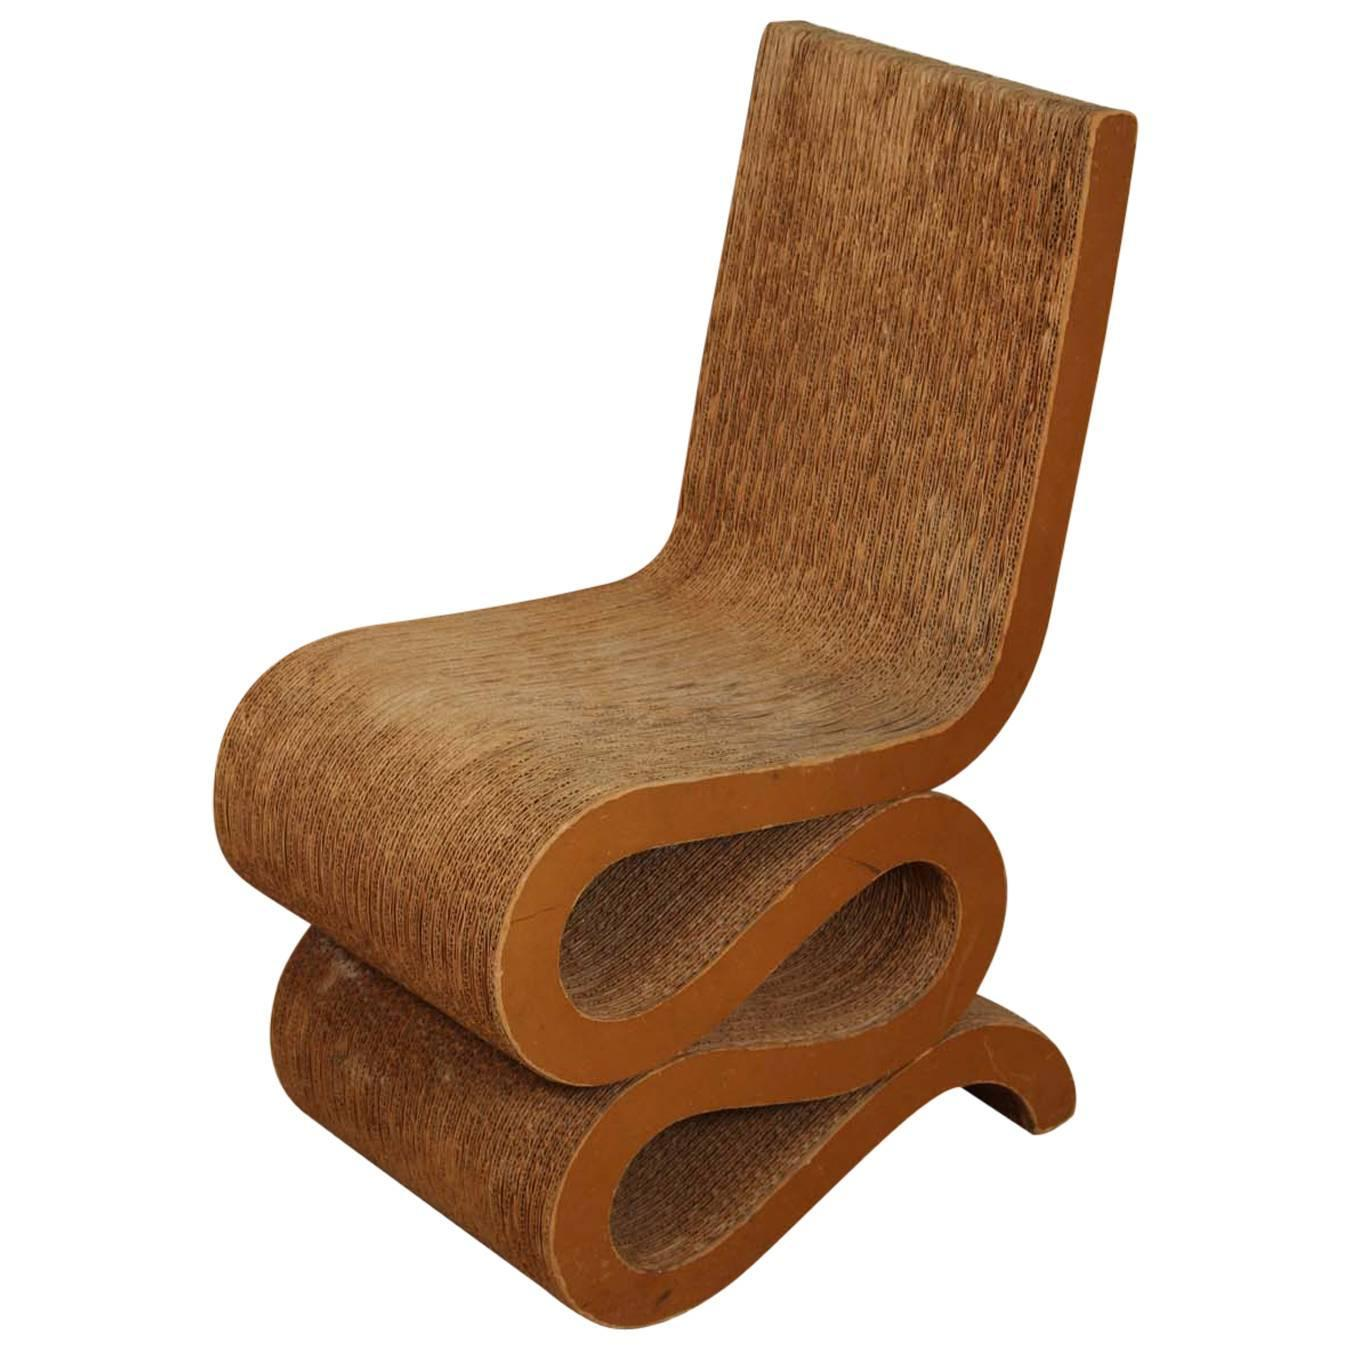 Cardboard Chair 1972 Frank Gehry Cardboard Quotwiggle Chair Quot At 1stdibs